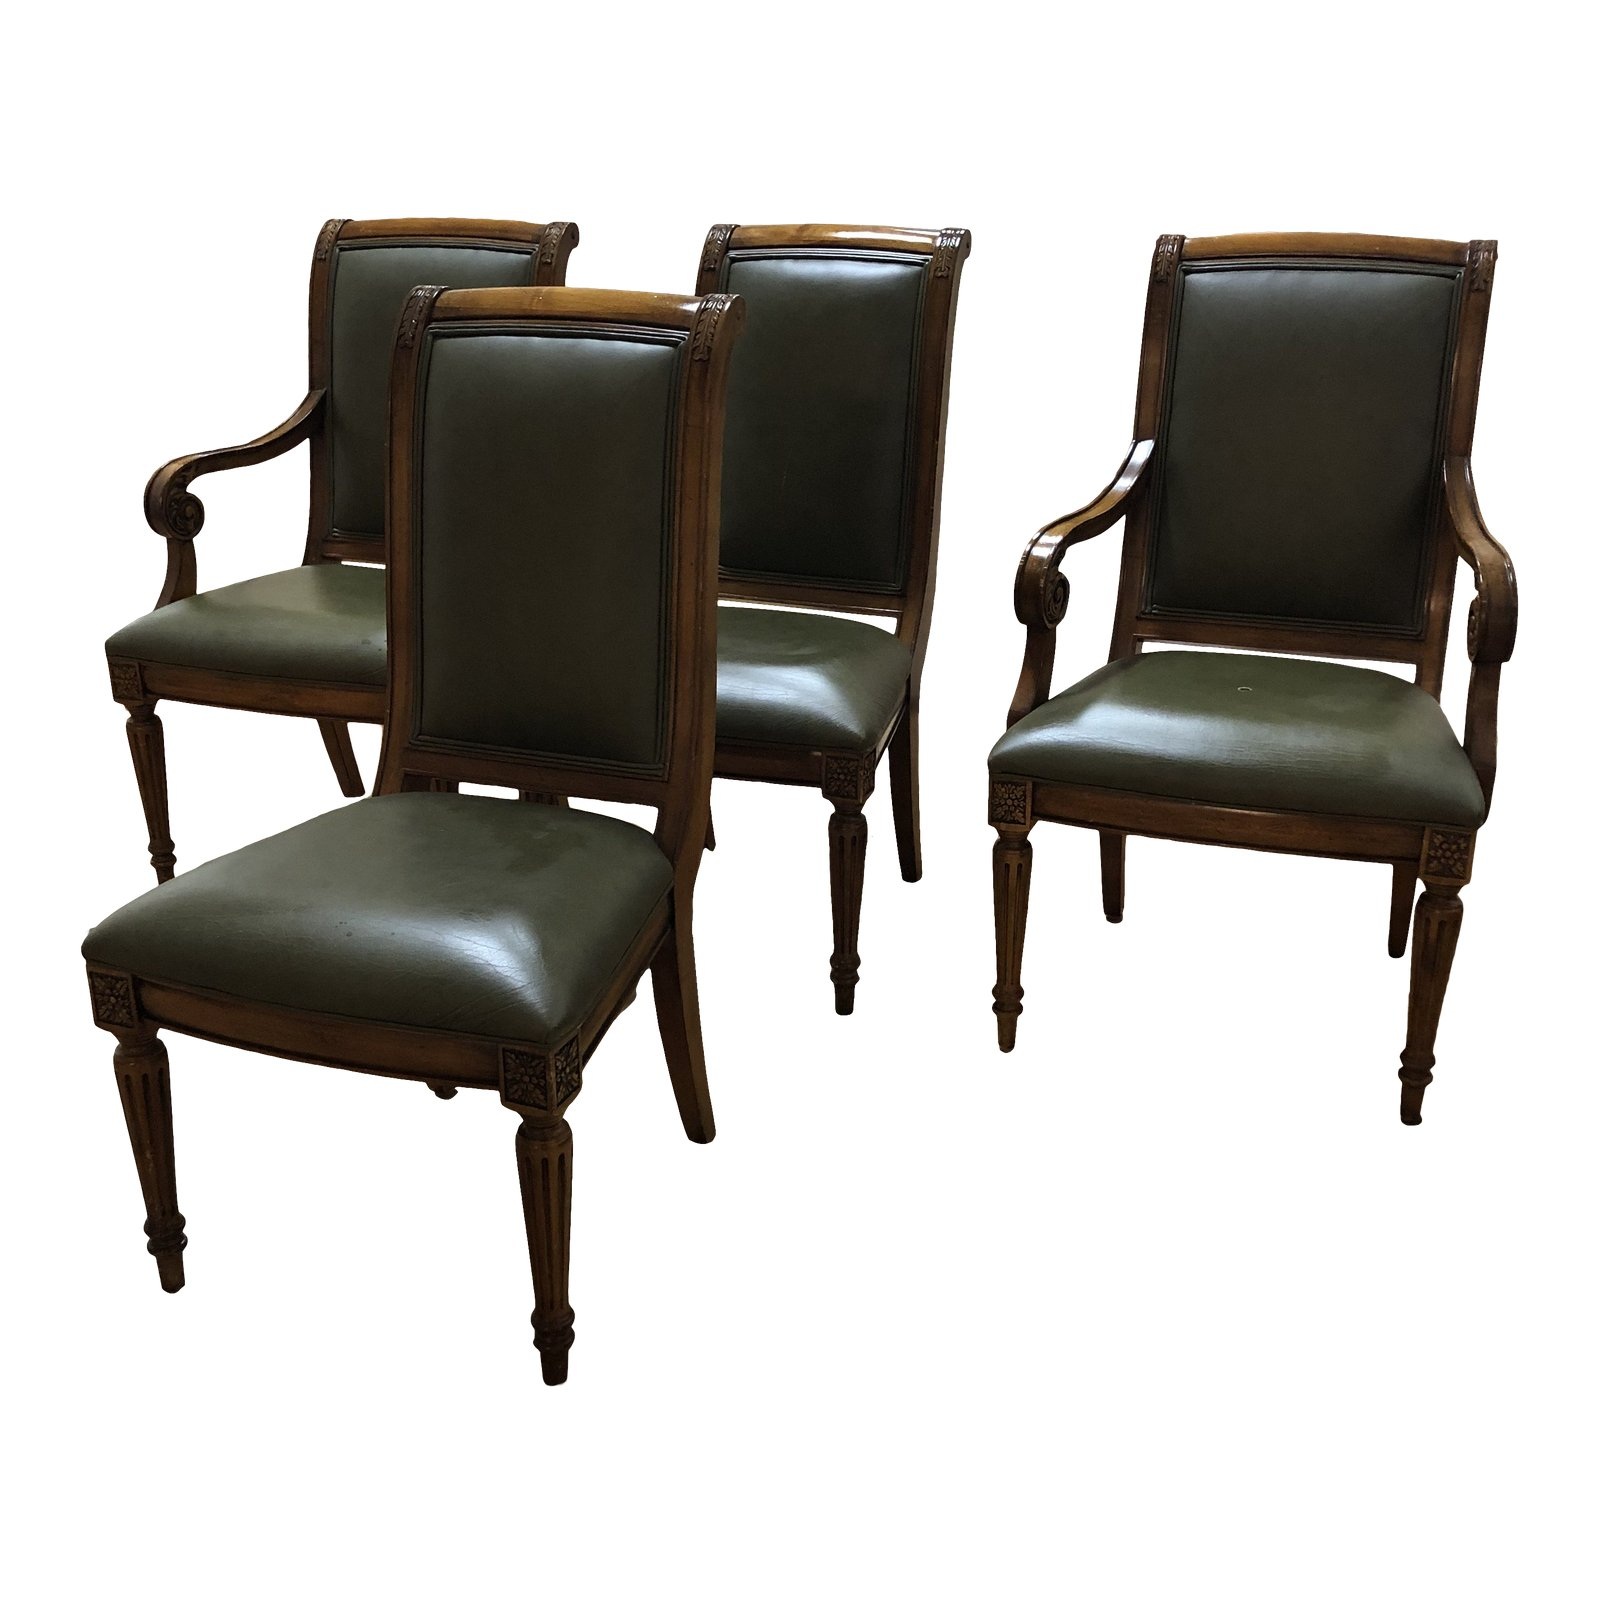 Ethan Allen Leather Adison Chairs Set Of 4 Original Price 2 876